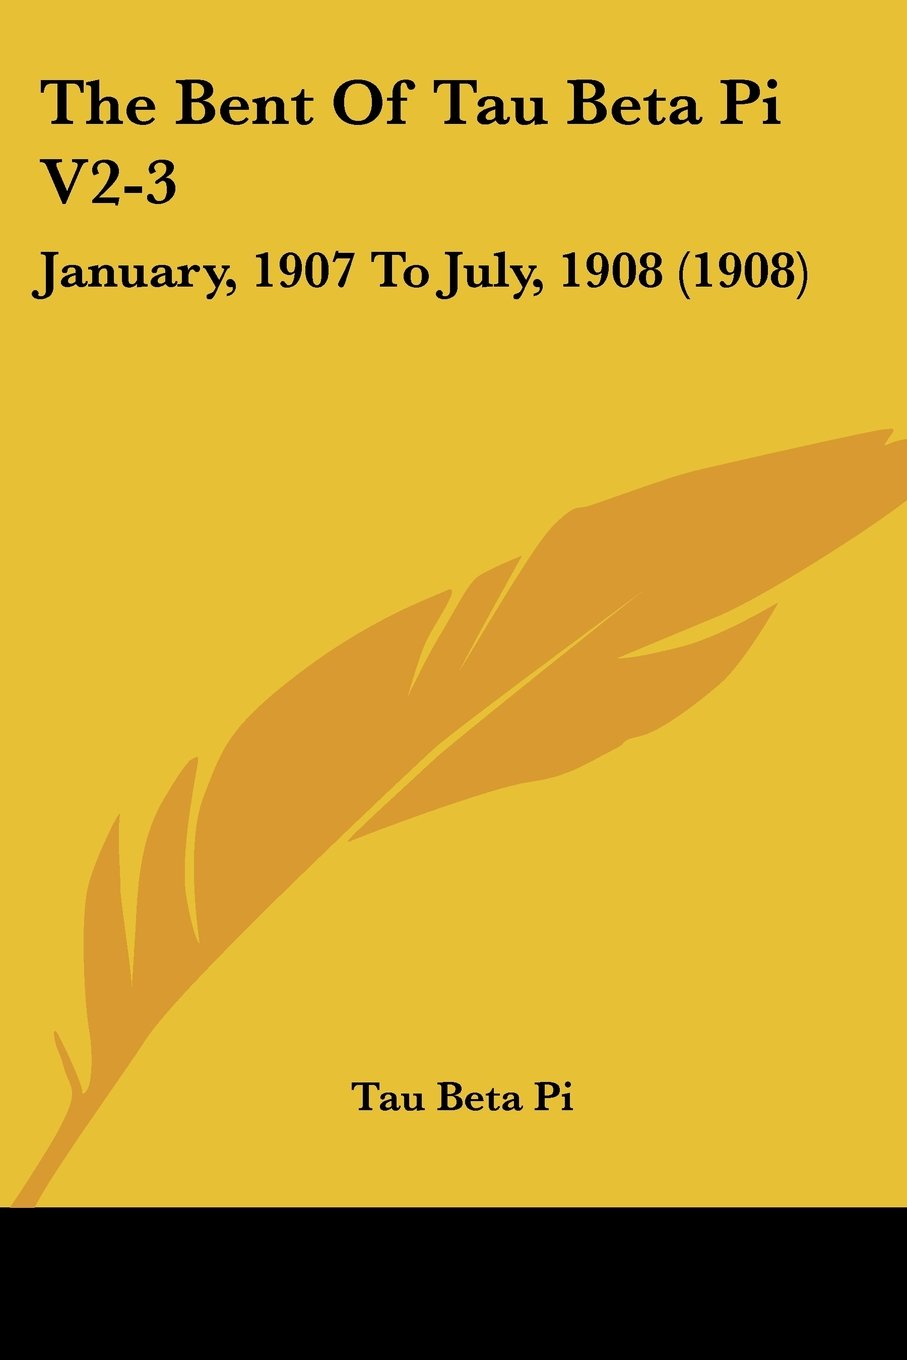 Download The Bent Of Tau Beta Pi V2-3: January, 1907 To July, 1908 (1908) pdf